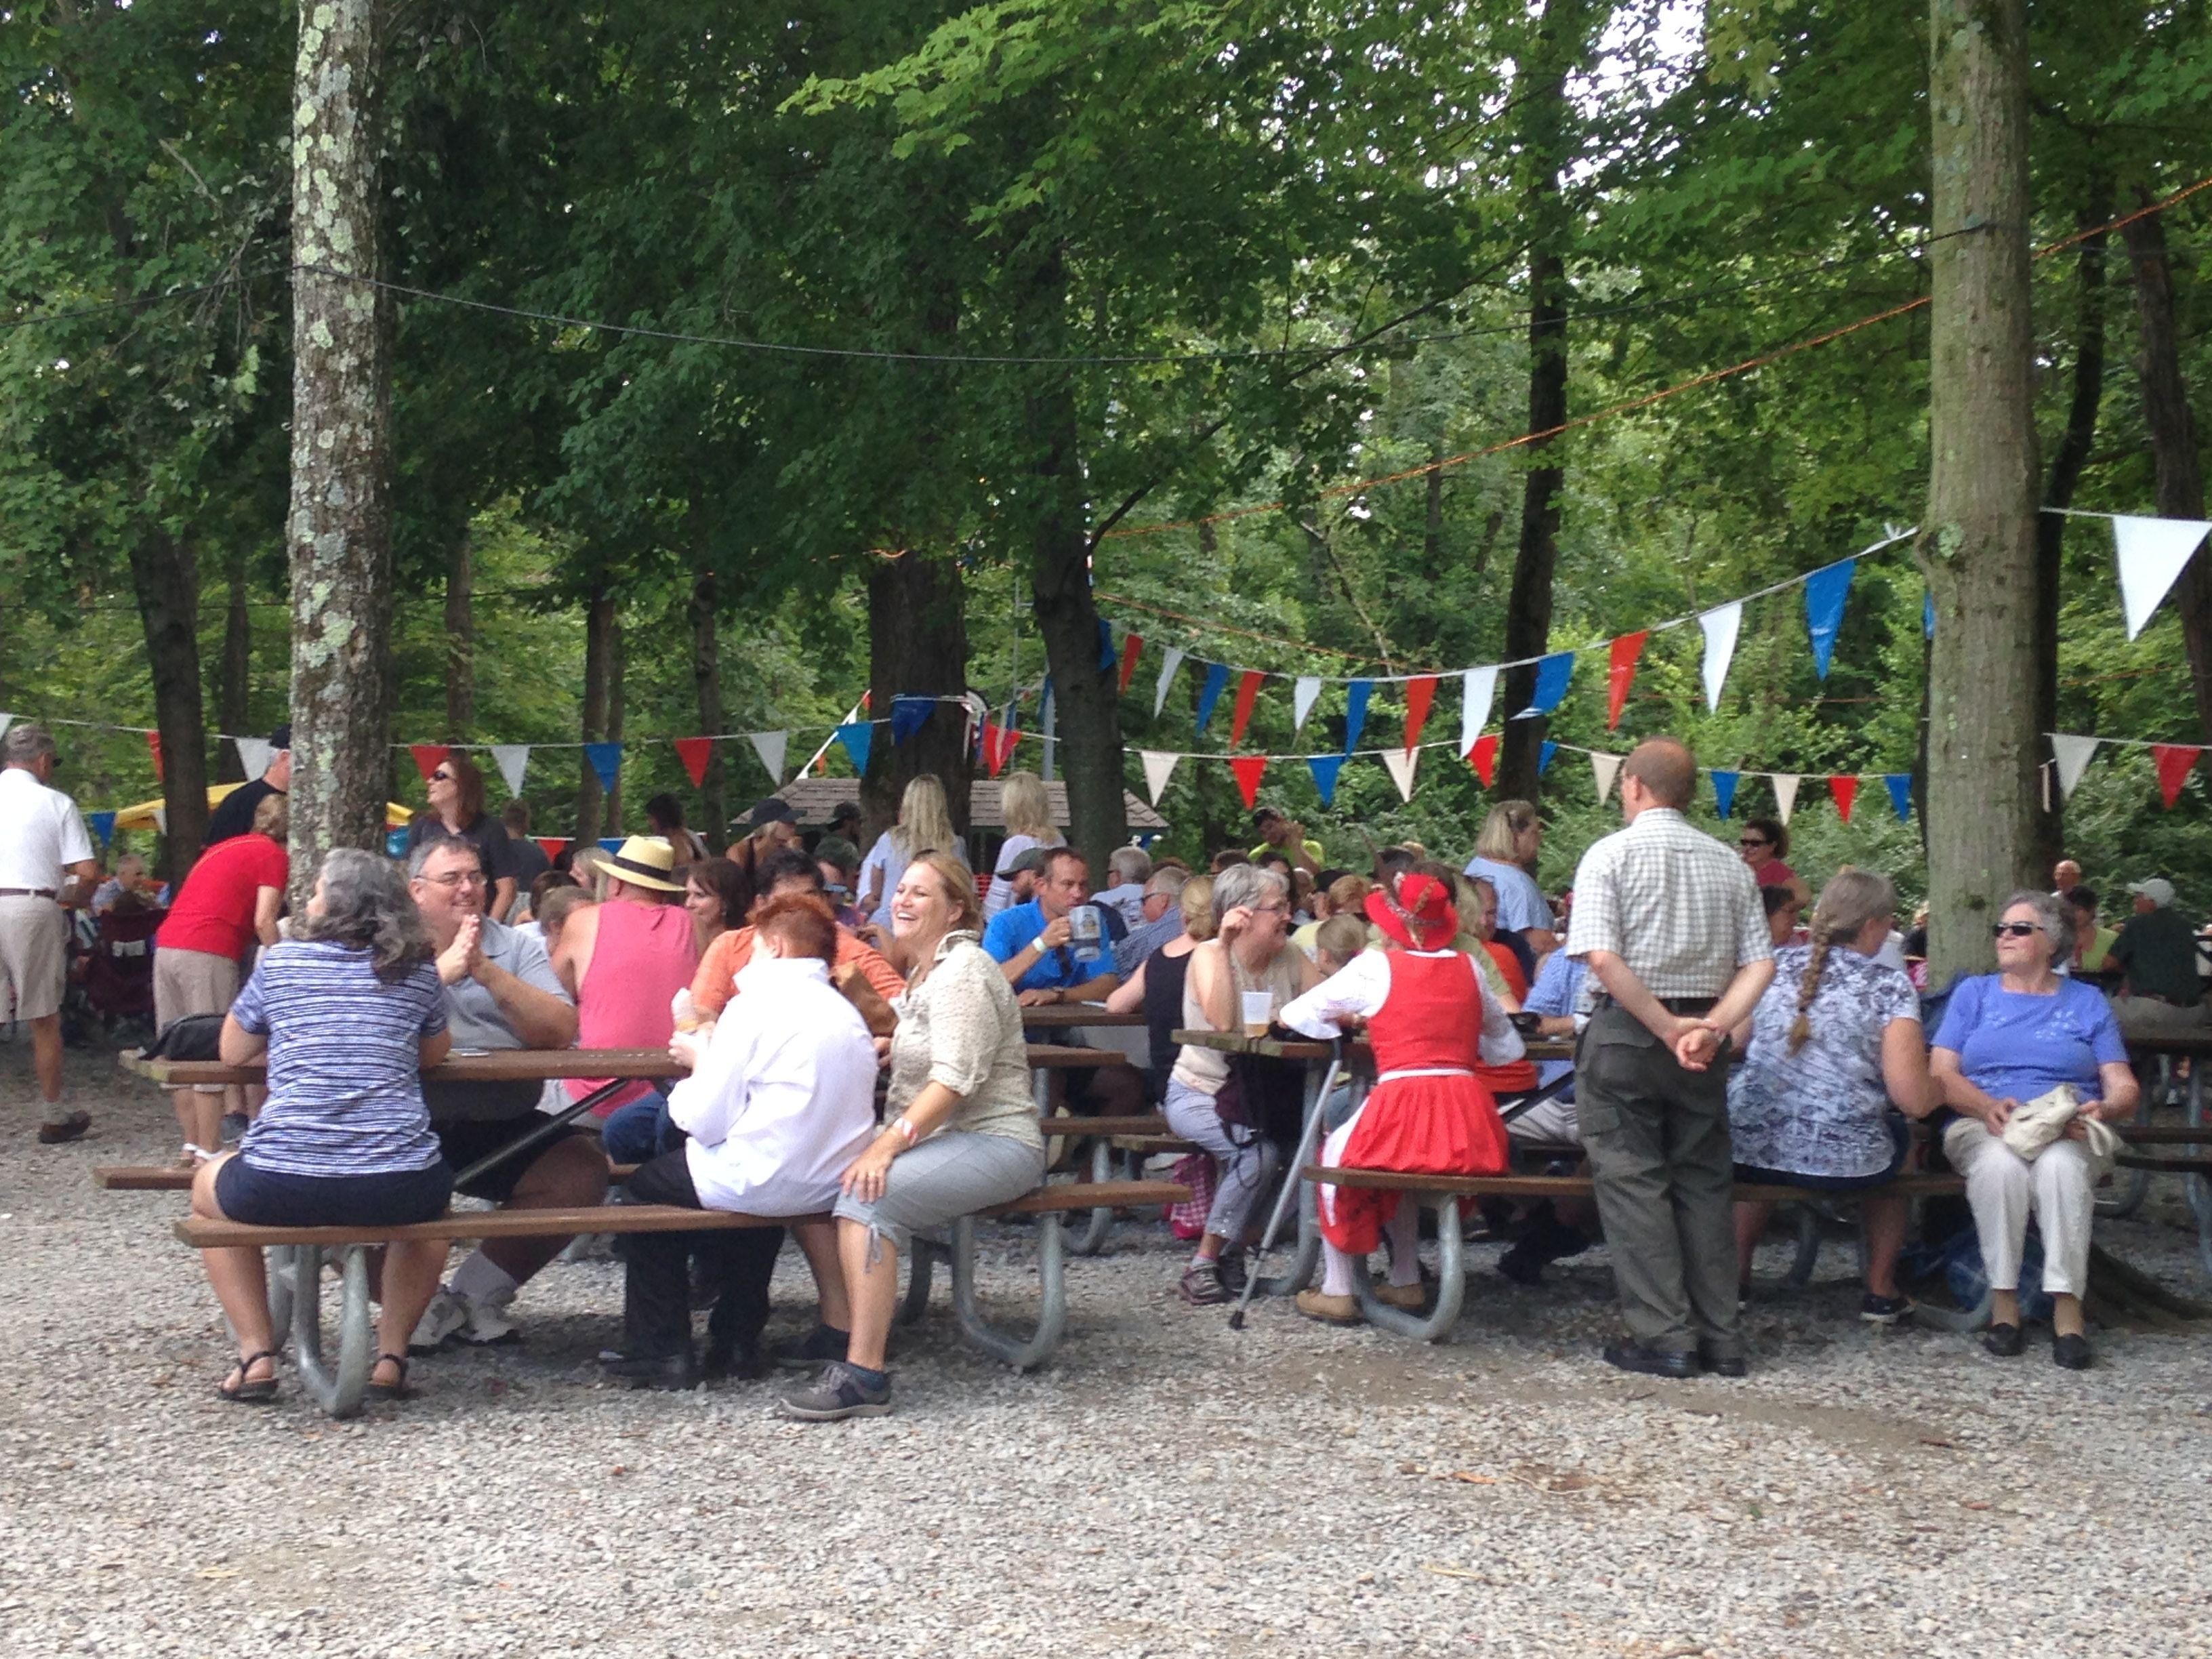 Diners enjoy a variety of German foods at the shaded picnic grove. (CT Photo/Gail Finke)